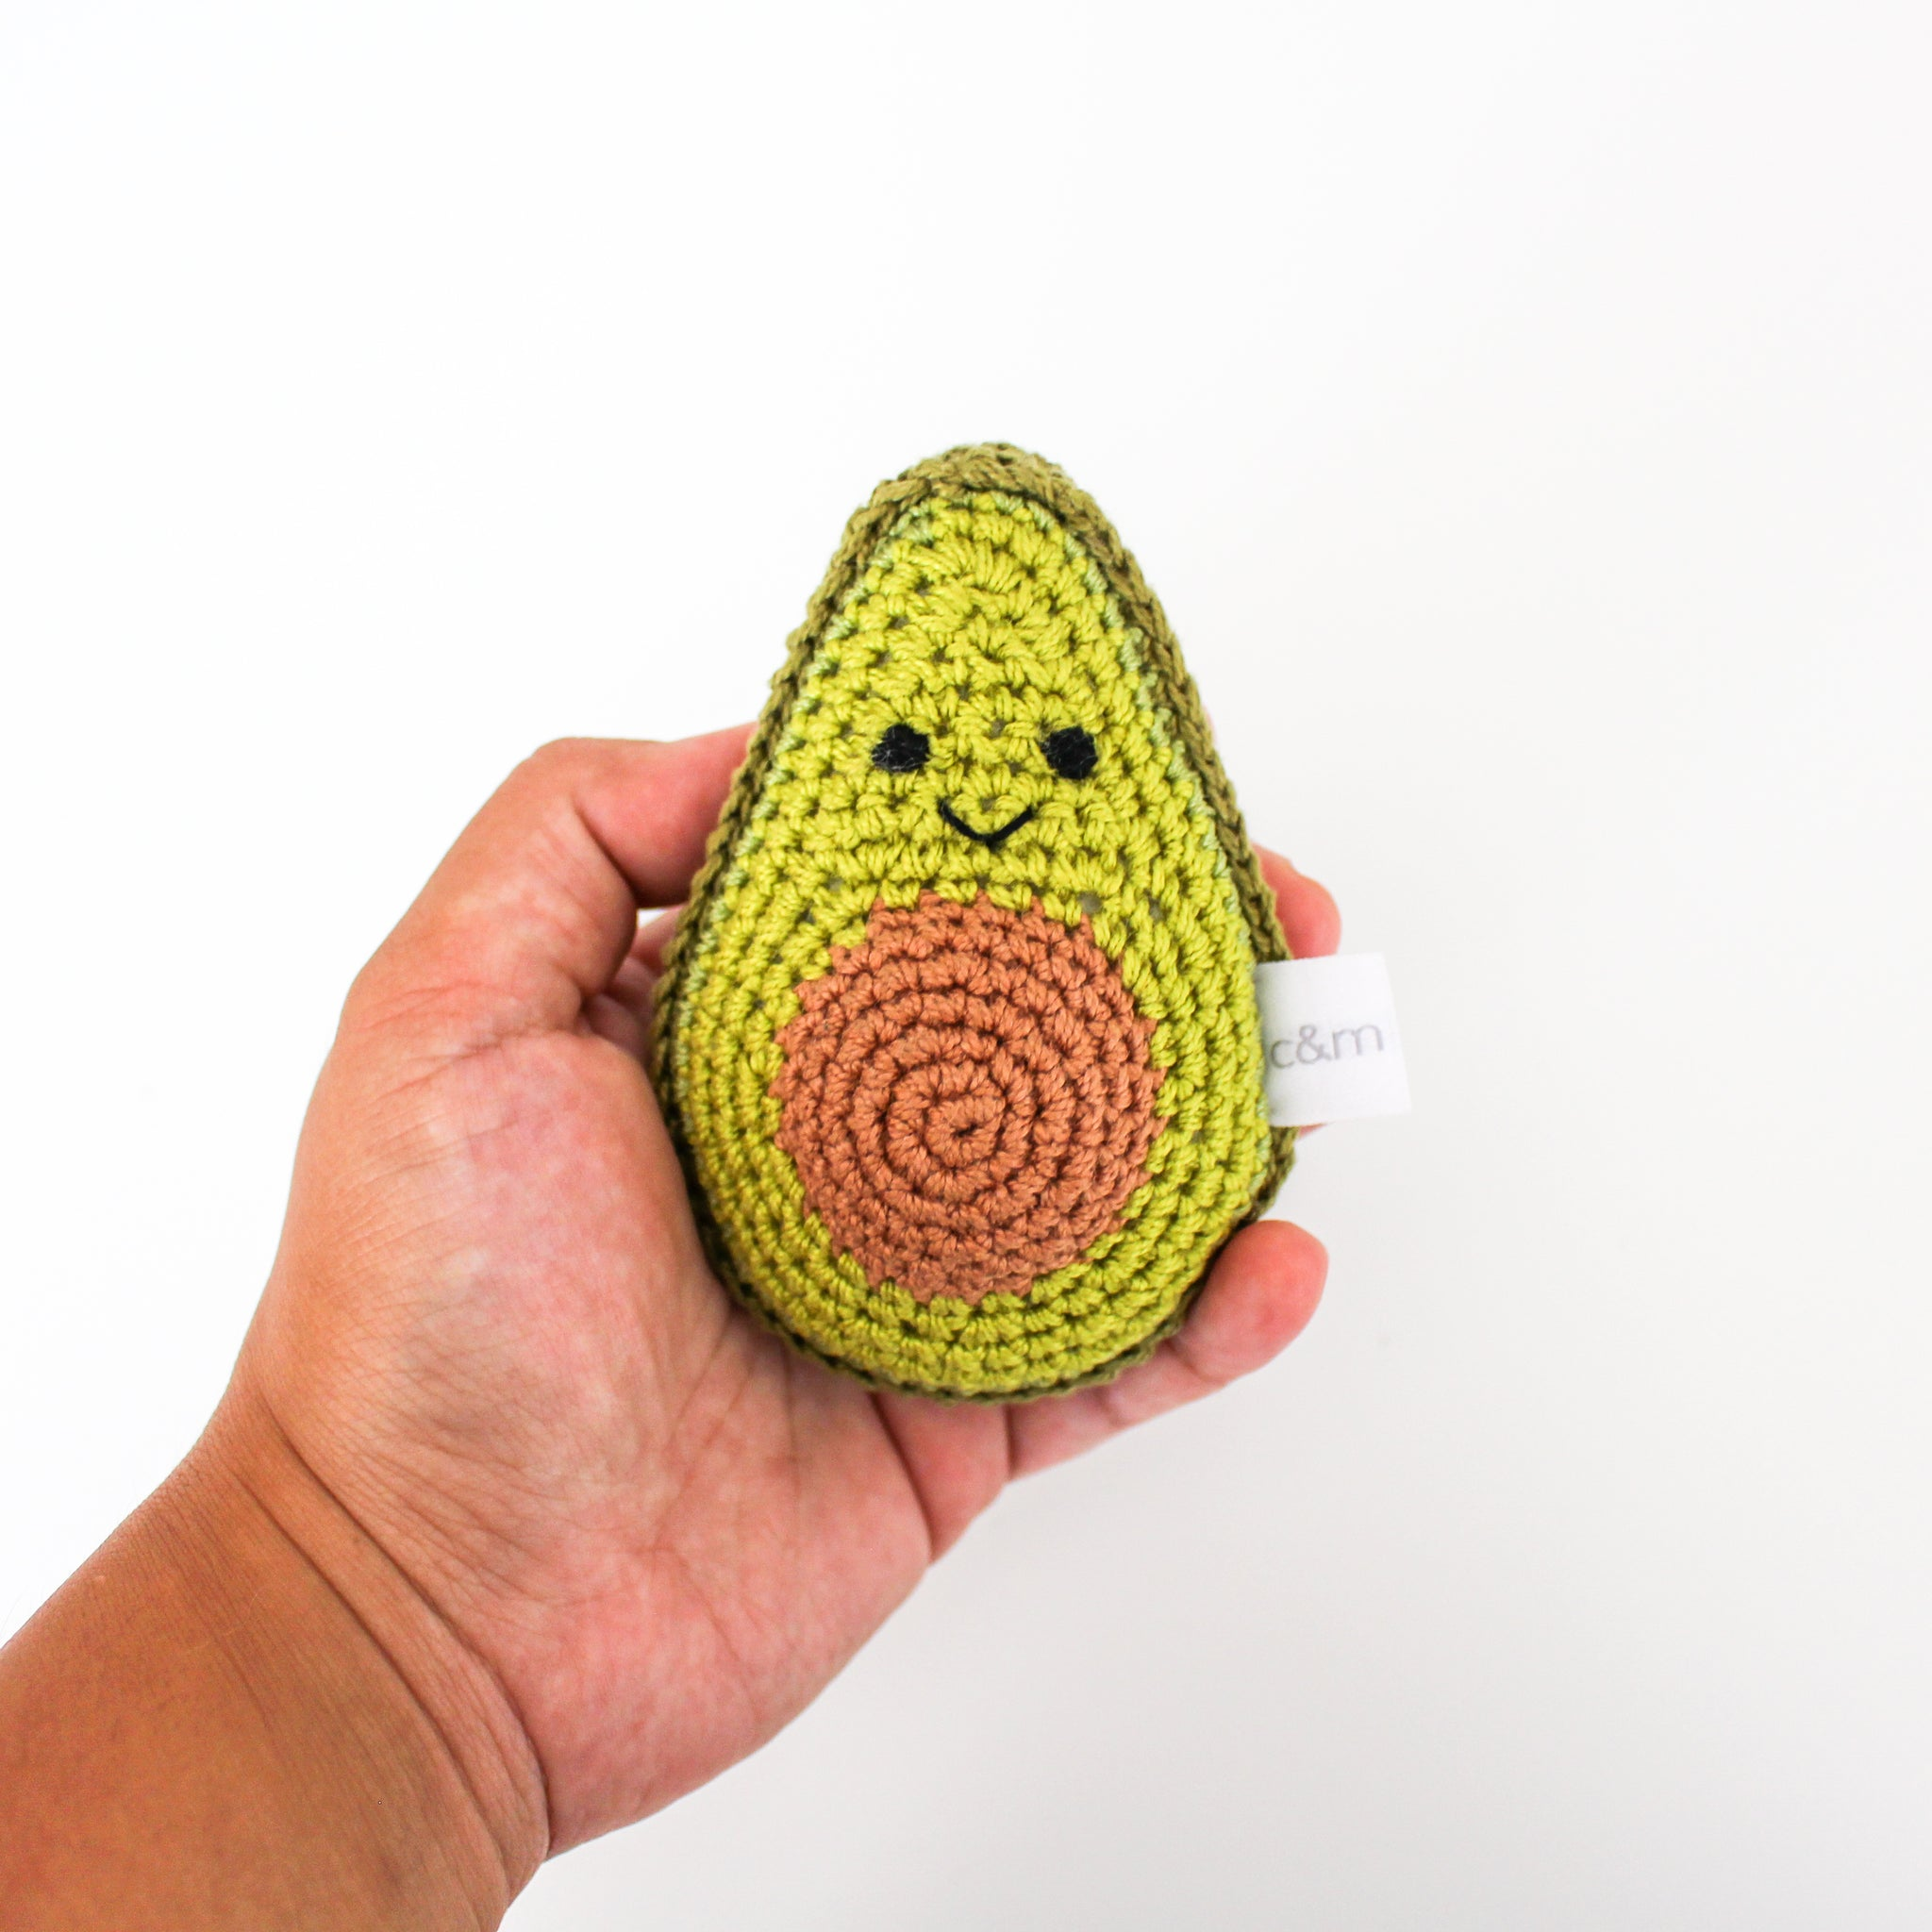 Rattle - Crocheted Avocado